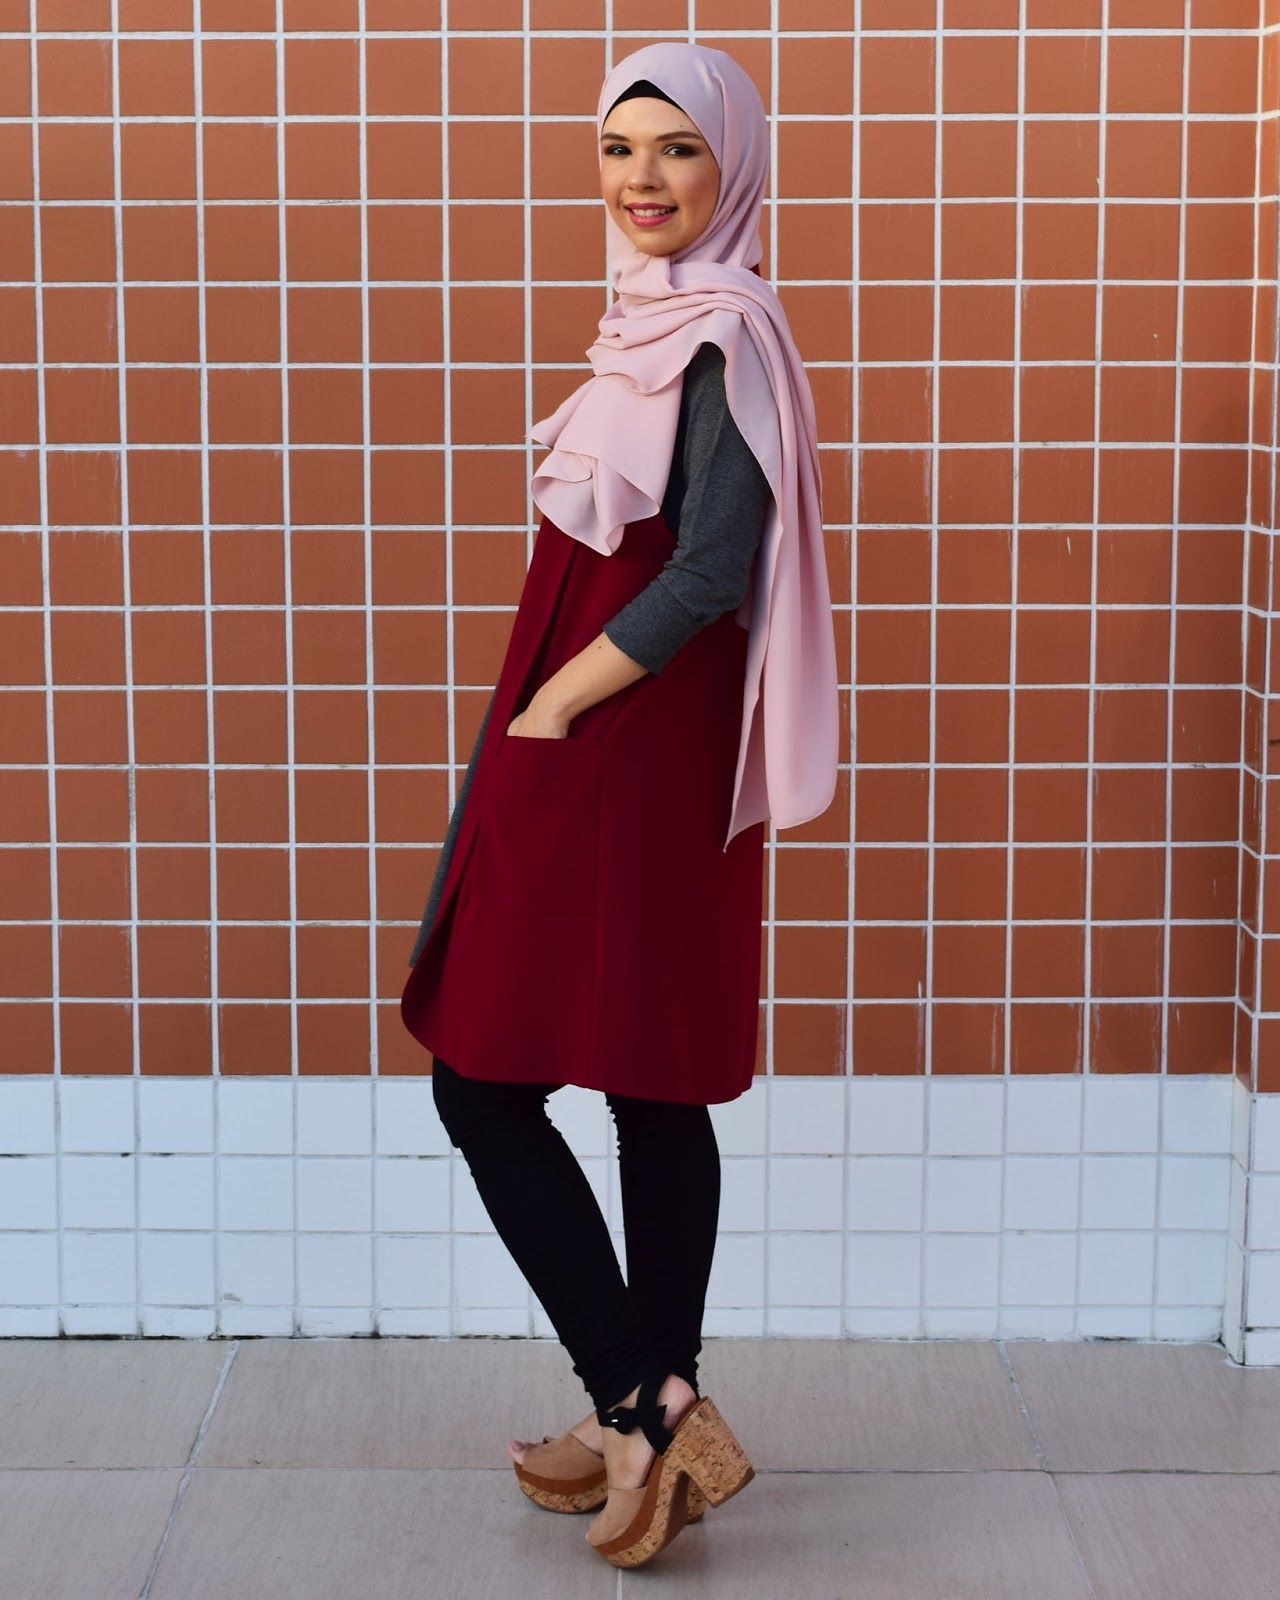 Modest Wear Lookbook feat Icovered - photoshoot, lookbook, modest wear, modest fashion, hijab fashion, hijab style, ootd, fashion blogger, modest fashion blogger, eid